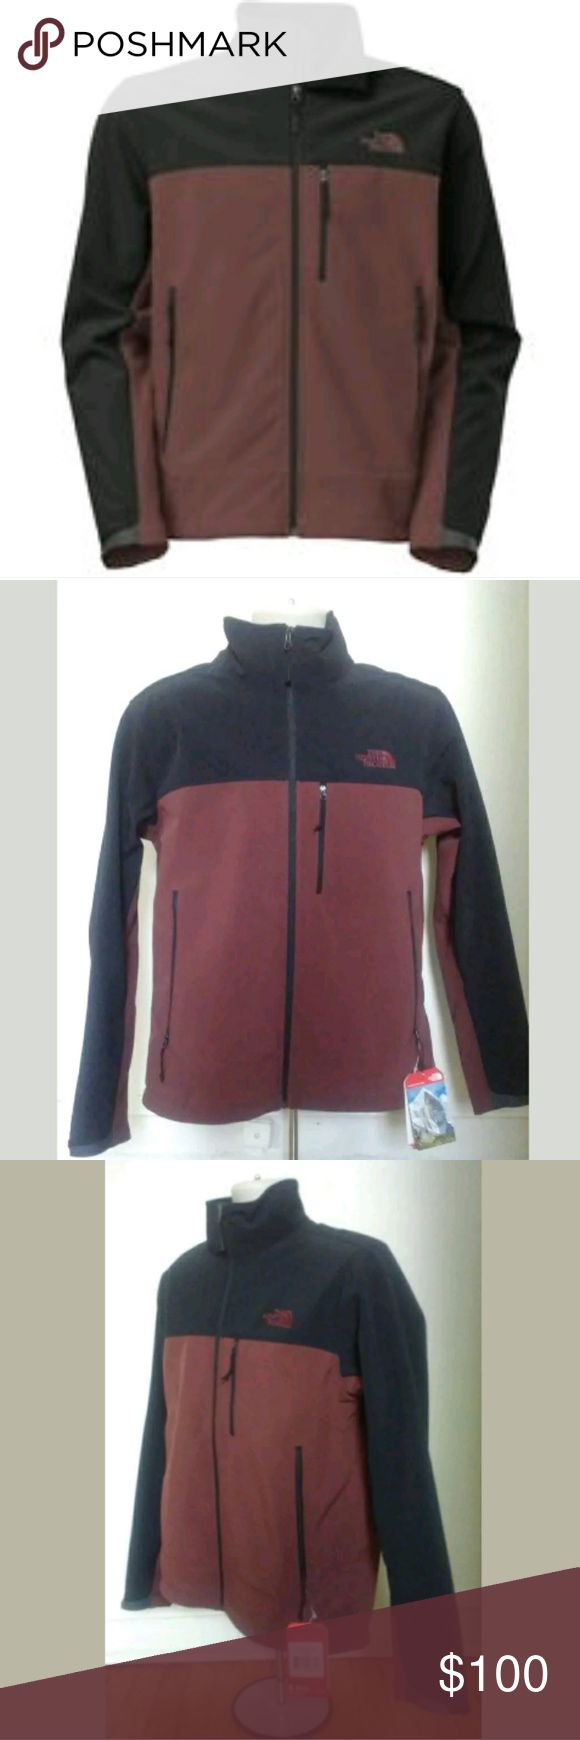 NWT The North Face Men's Jacket New With Tags The North Face Mens Apex Bionic Jacket Burgundy and Black  Retails for $150  Men's Size Medium  Men's Relaxed Fit  A classic fit with added ease  Fit with a little more room in the body and sleeves  A soft shell for activity in severe weather conditions  Breathable, windproof and water resistant  Perfect for hiking, outdoors activities  Will consider reasonable offers! The North Face Jackets & Coats